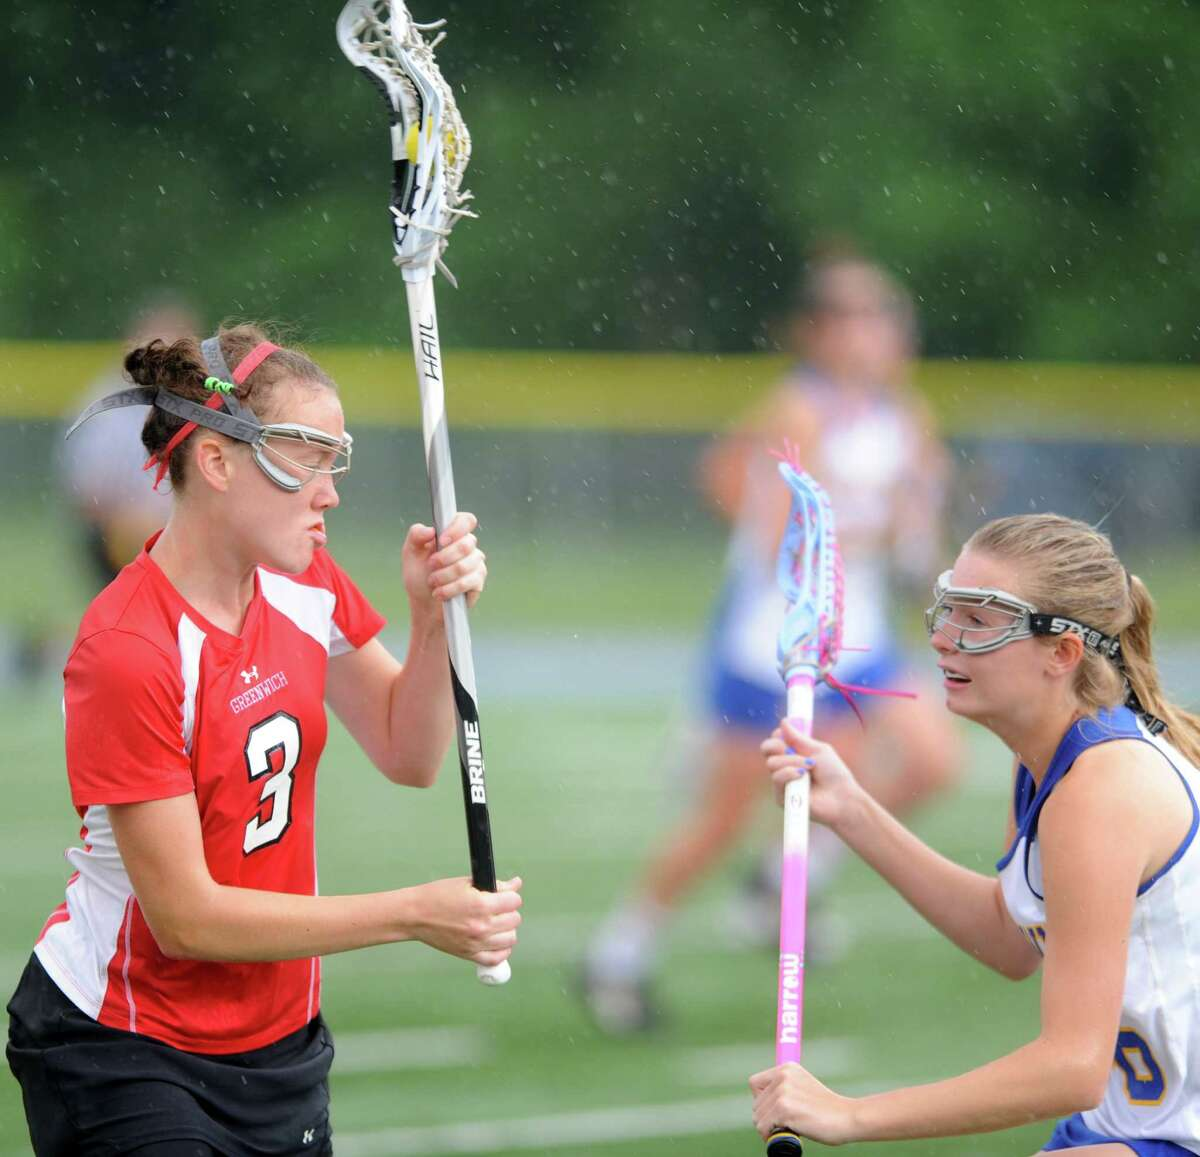 Greenwich's Claire Feeney controls the ball as Newtown's Kaitlyn VosWinkle defends during the Girls Lacrosse State Tournament Class L Semifinals Wednesday, June 6, 2012 at Bunnell High School in Stratford, Conn.